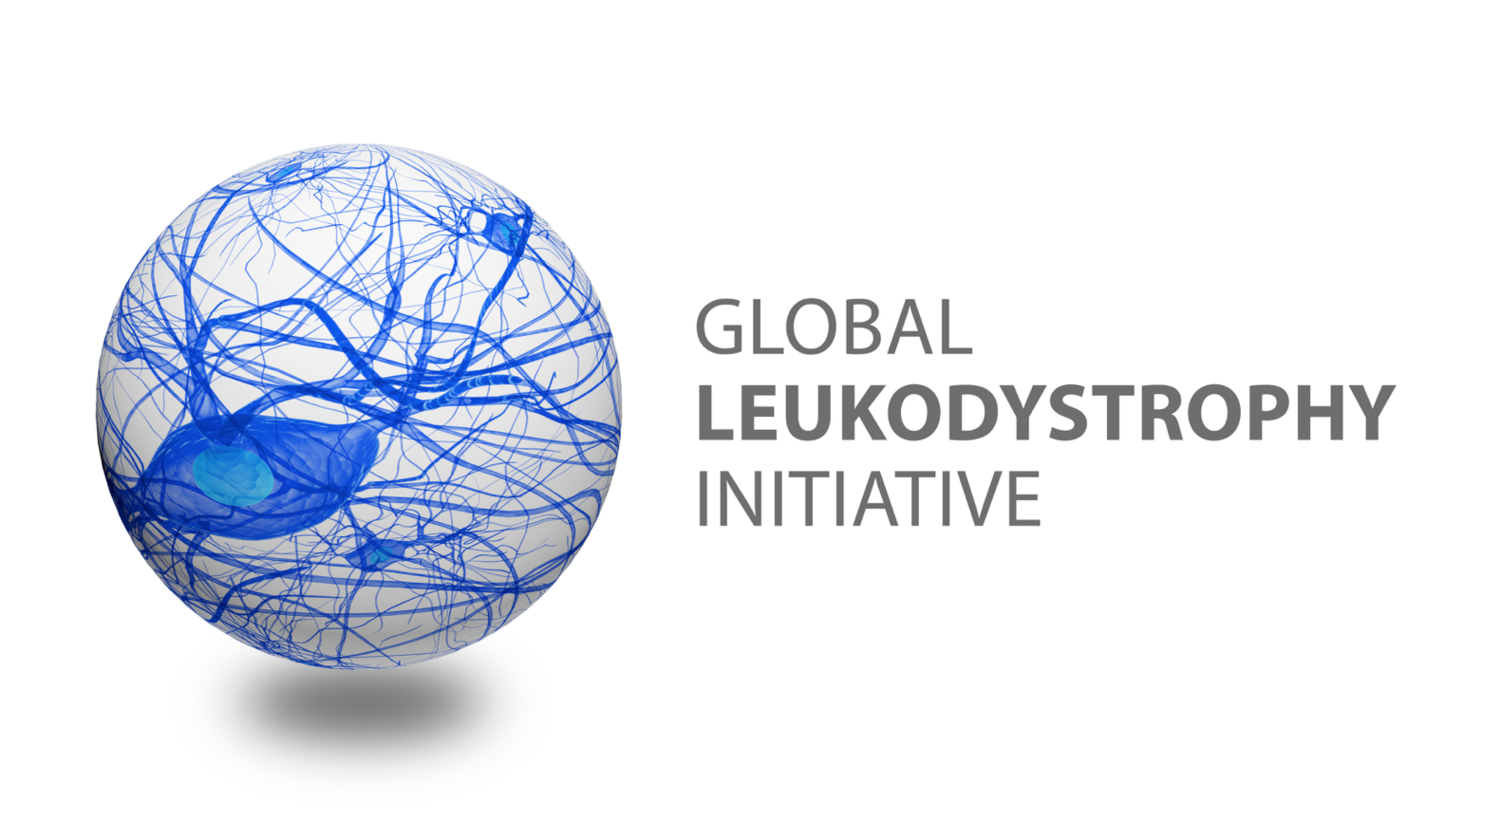 The Global Leukodystrophy Initiative